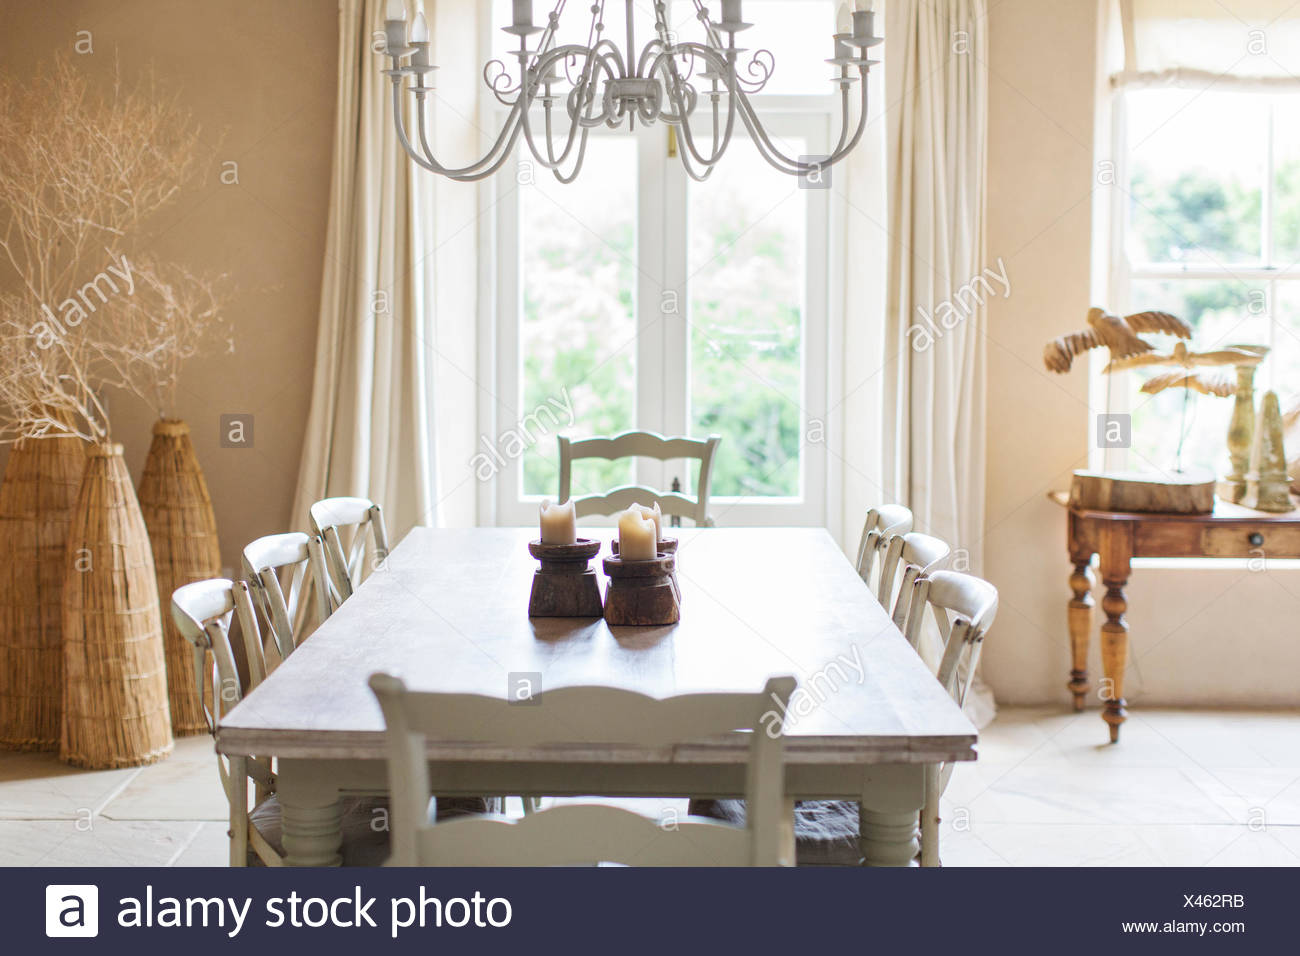 Dining table in rustic house - Stock Image